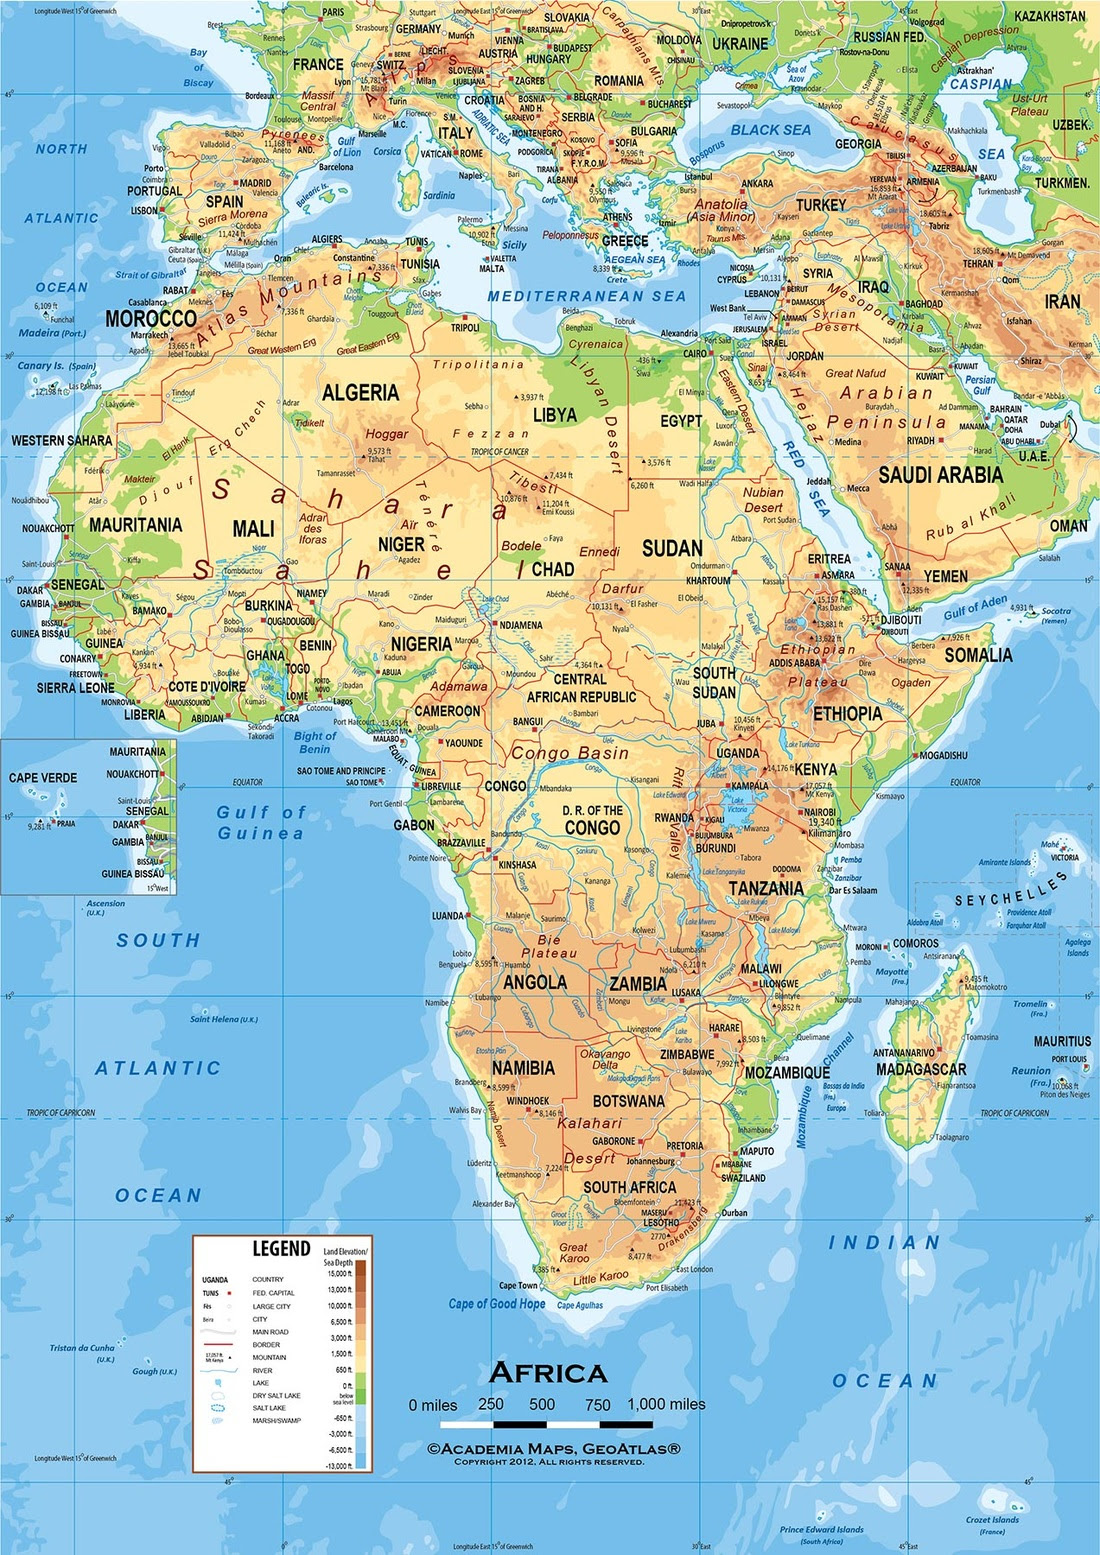 Map Of Africa Physical Geography.25 Beautiful Africa Physical Features Map